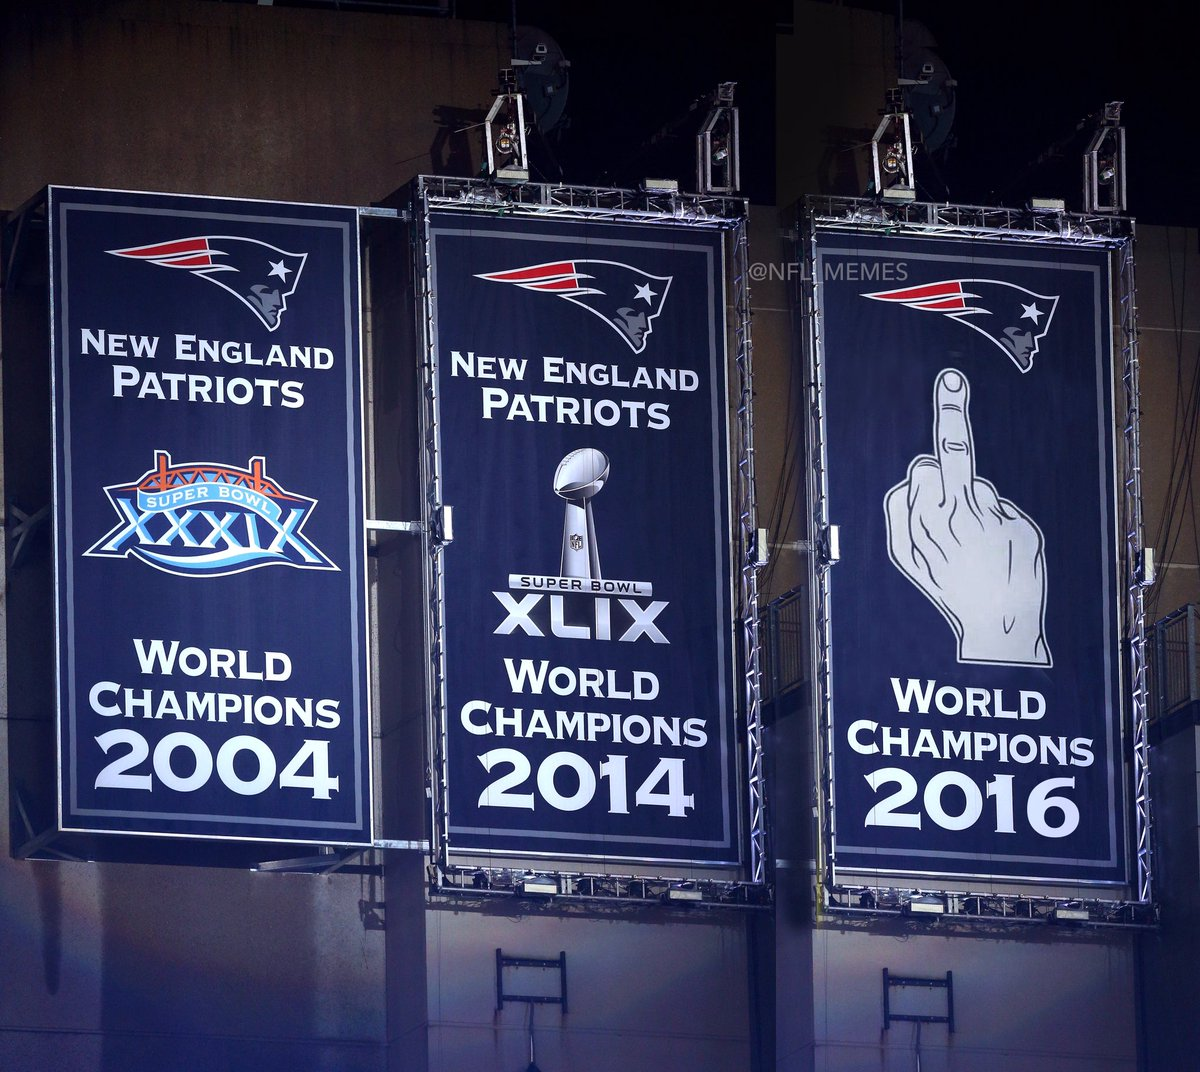 Marvelous Gillette Stadium Championship Banners